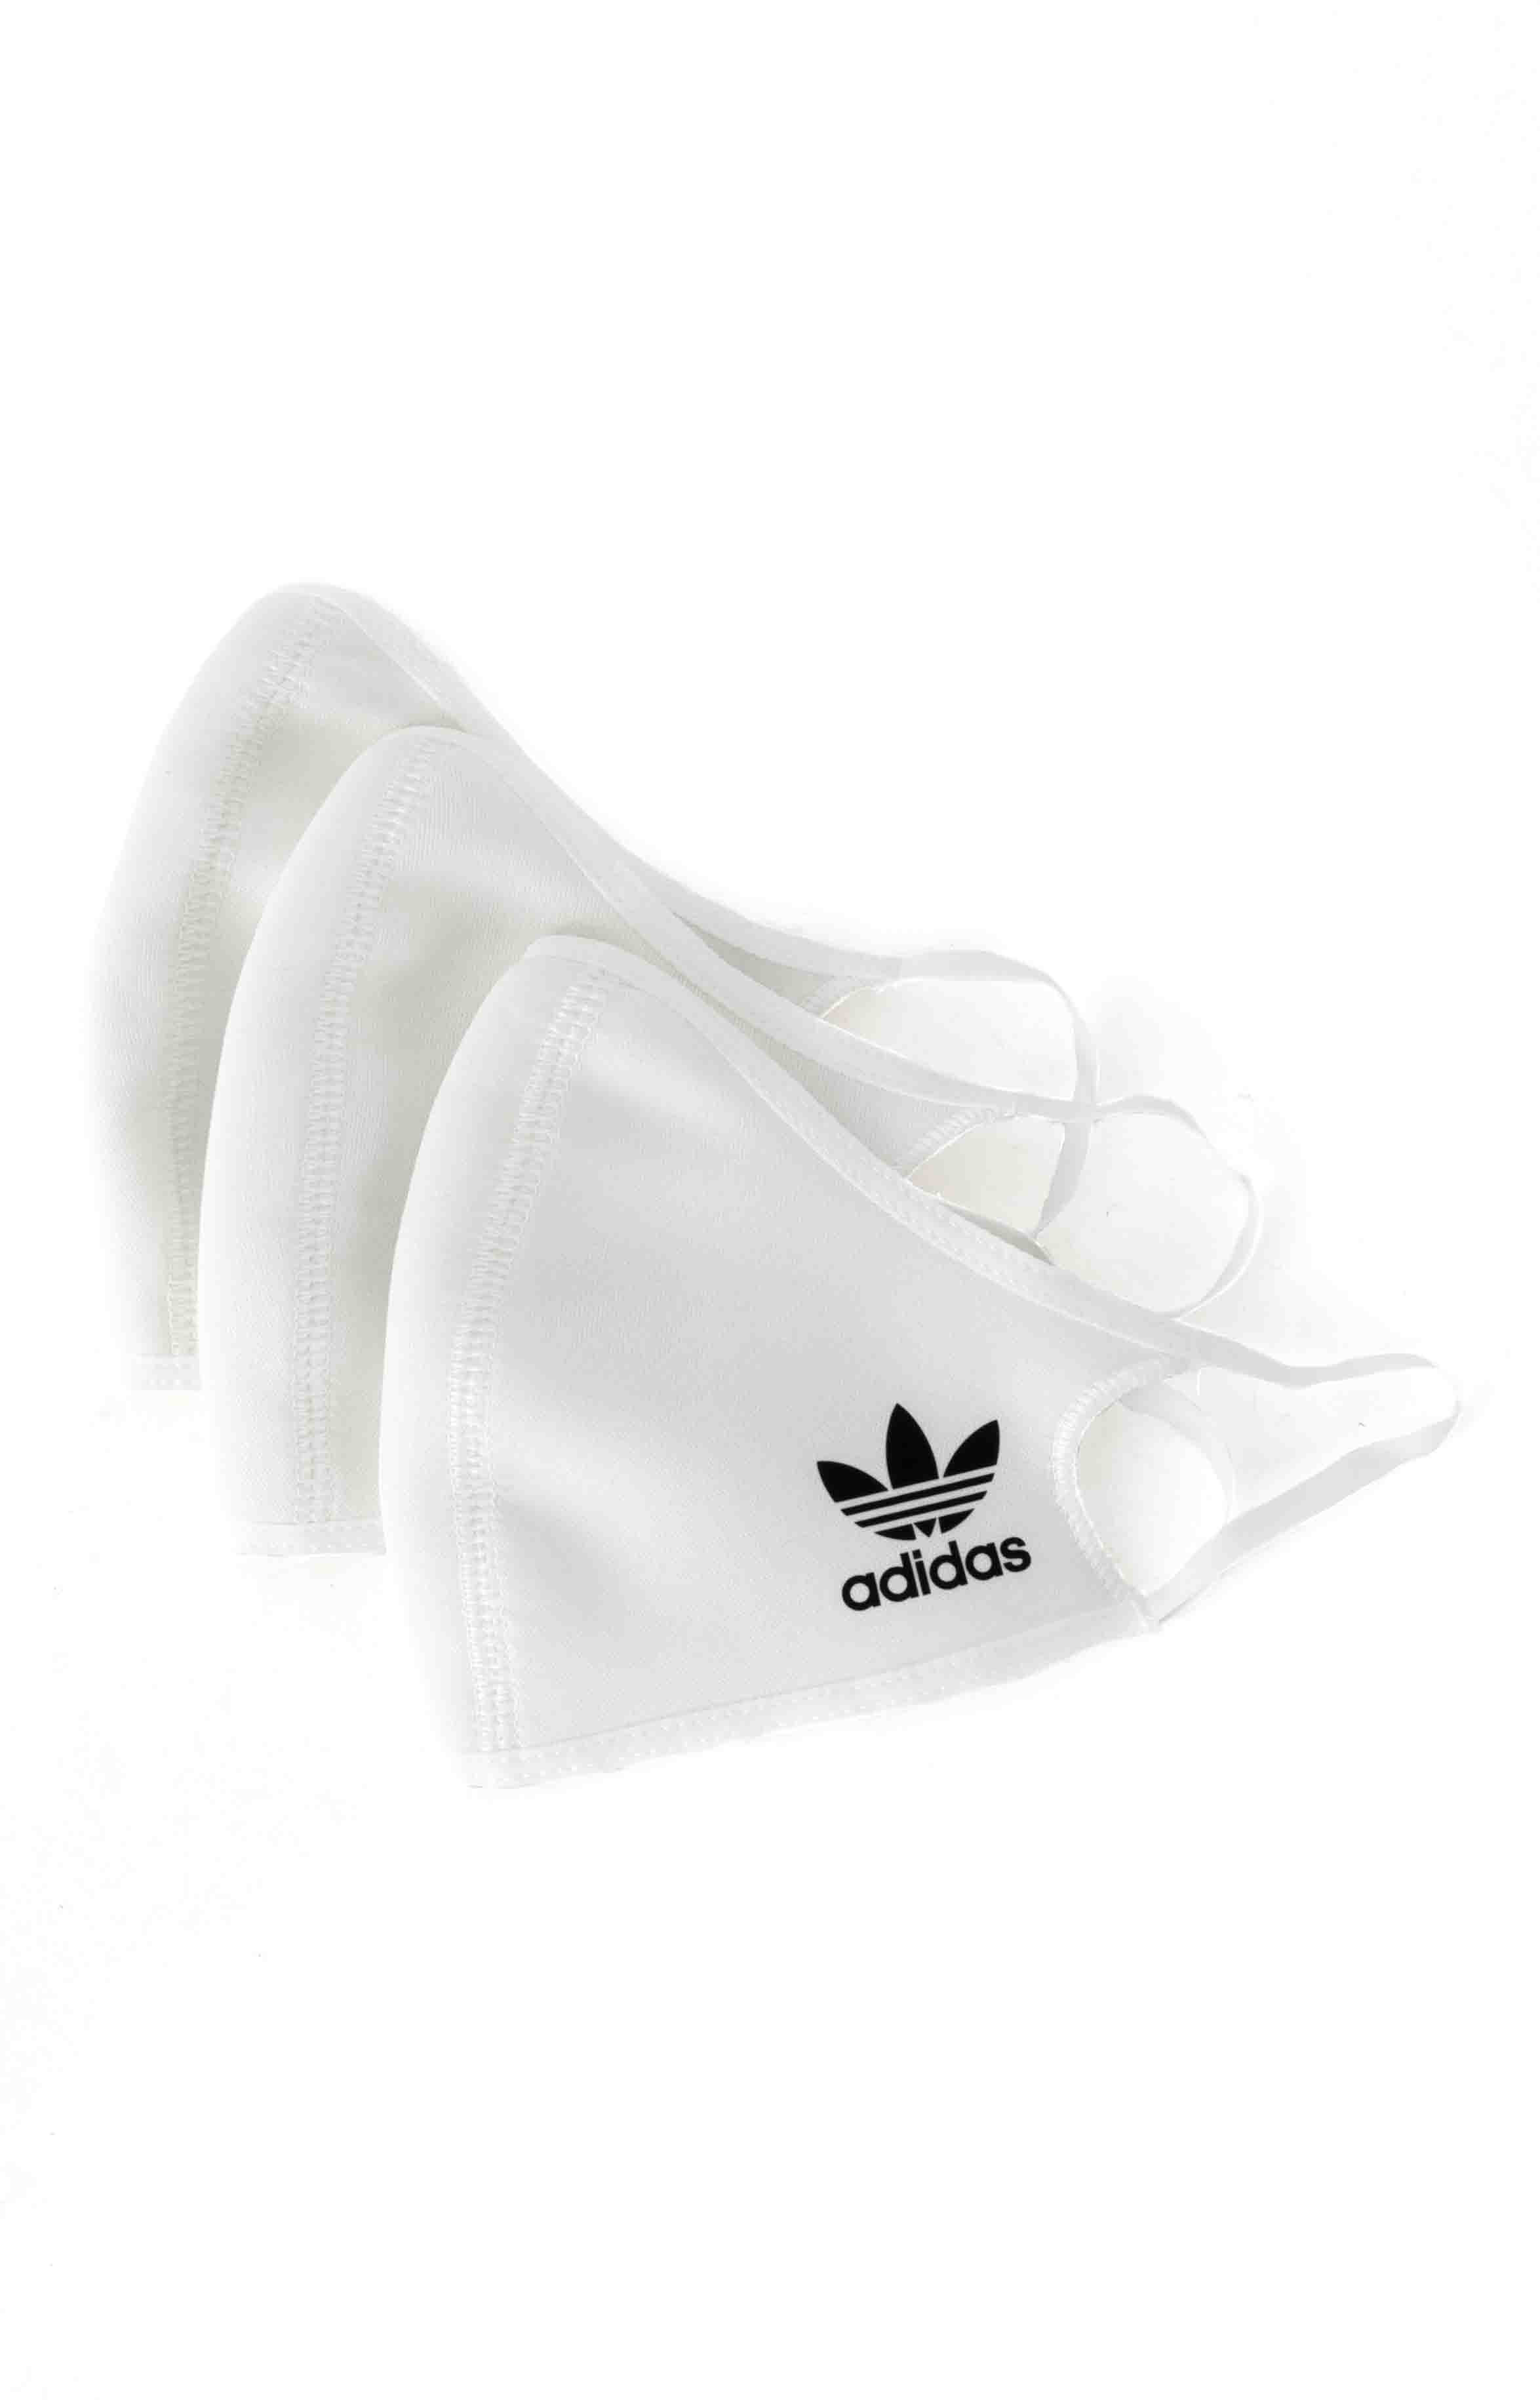 Face Covers 3 Pack - White  2